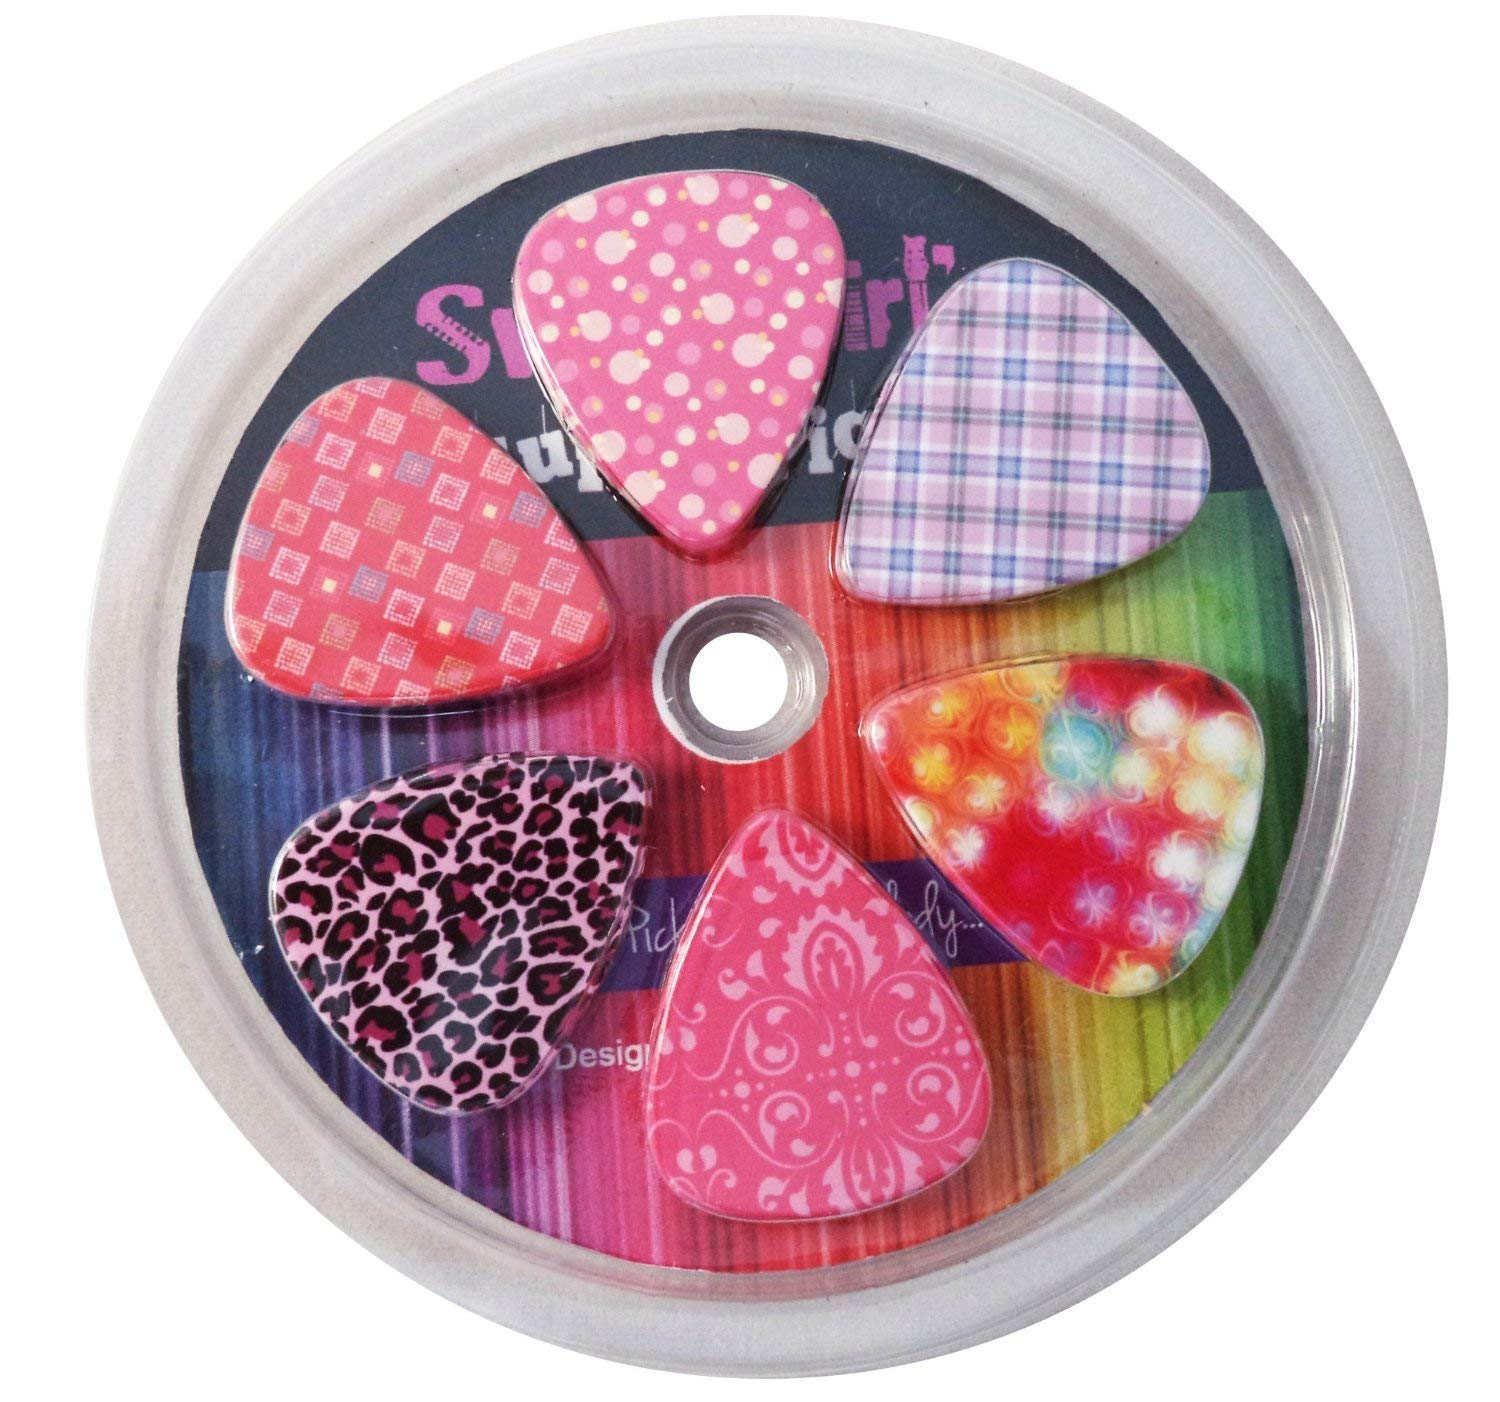 Guitar Picks for Girls - Medium Celluloid Assorted Variety 12-Pack Collection - Pretty Unique Designs Cool Pink Leopard - Best Gifts for Princess, Kids, Teens, Women, Ladies, Female Guitar Players NewEights 715547666168